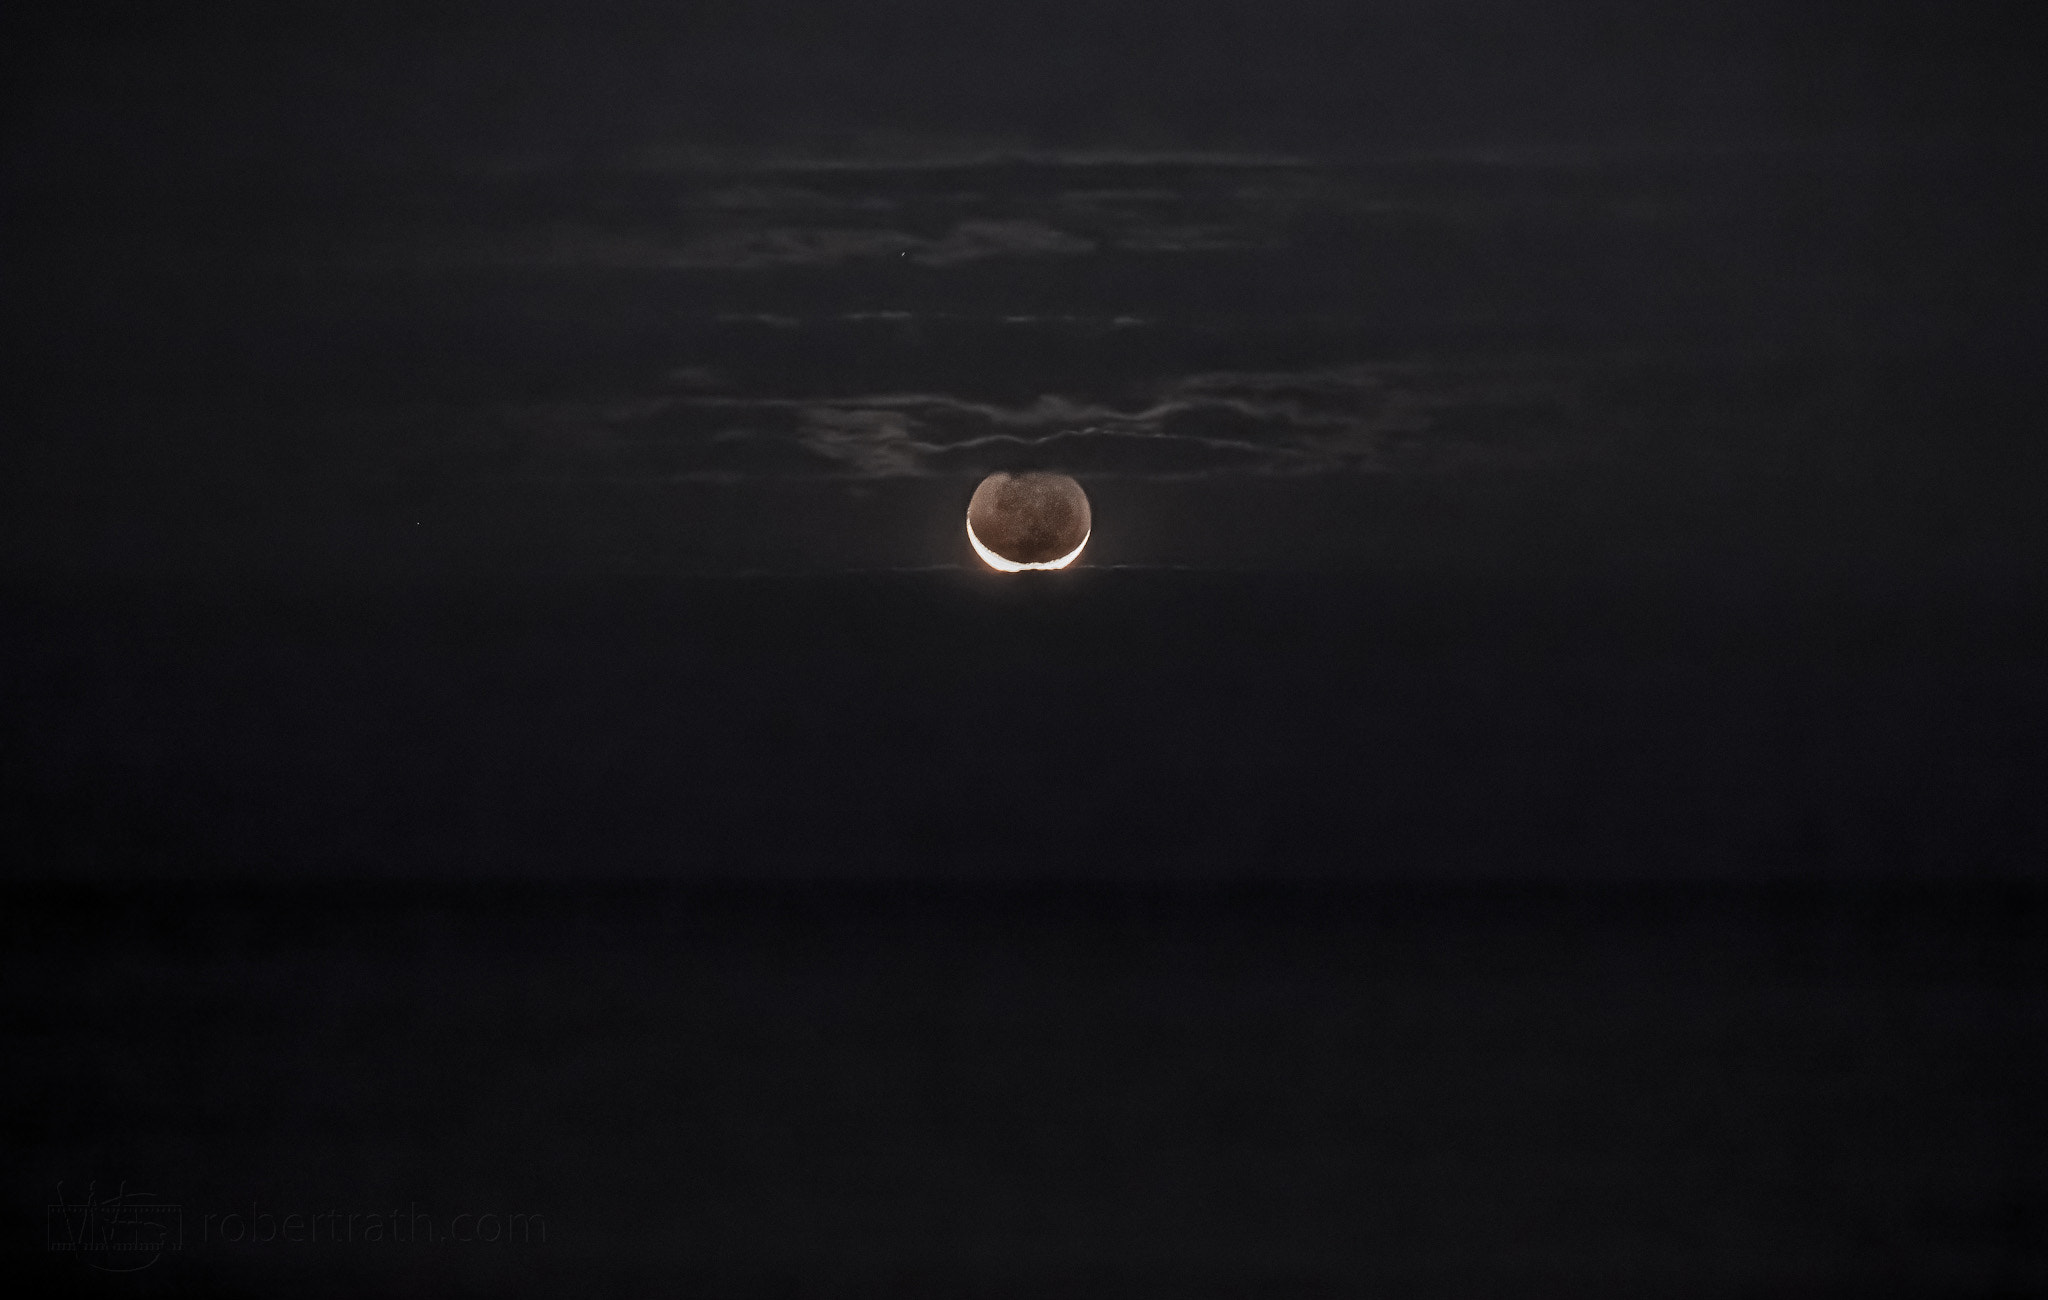 Photograph 366 Days of 2012, Day 233 - Waxing Crescent Moon by Robert Rath on 500px